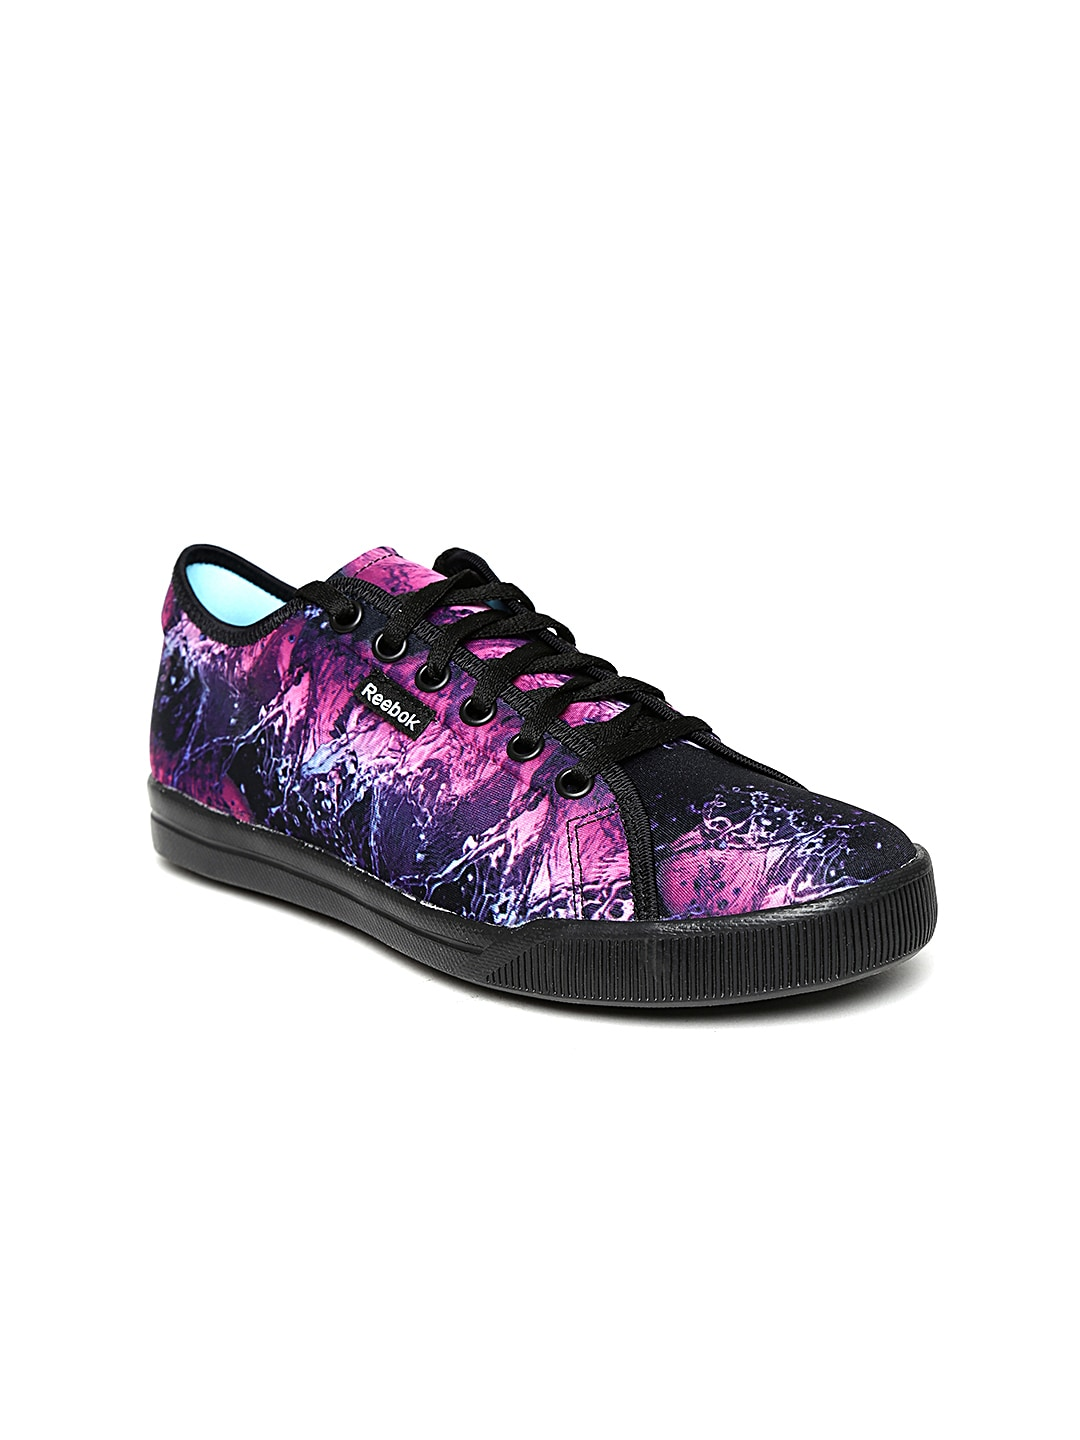 705453ca077baa Reebok v65944 Women Magenta And Black Skyscape Runaround 20 Printed Walking  Shoes- Price in India